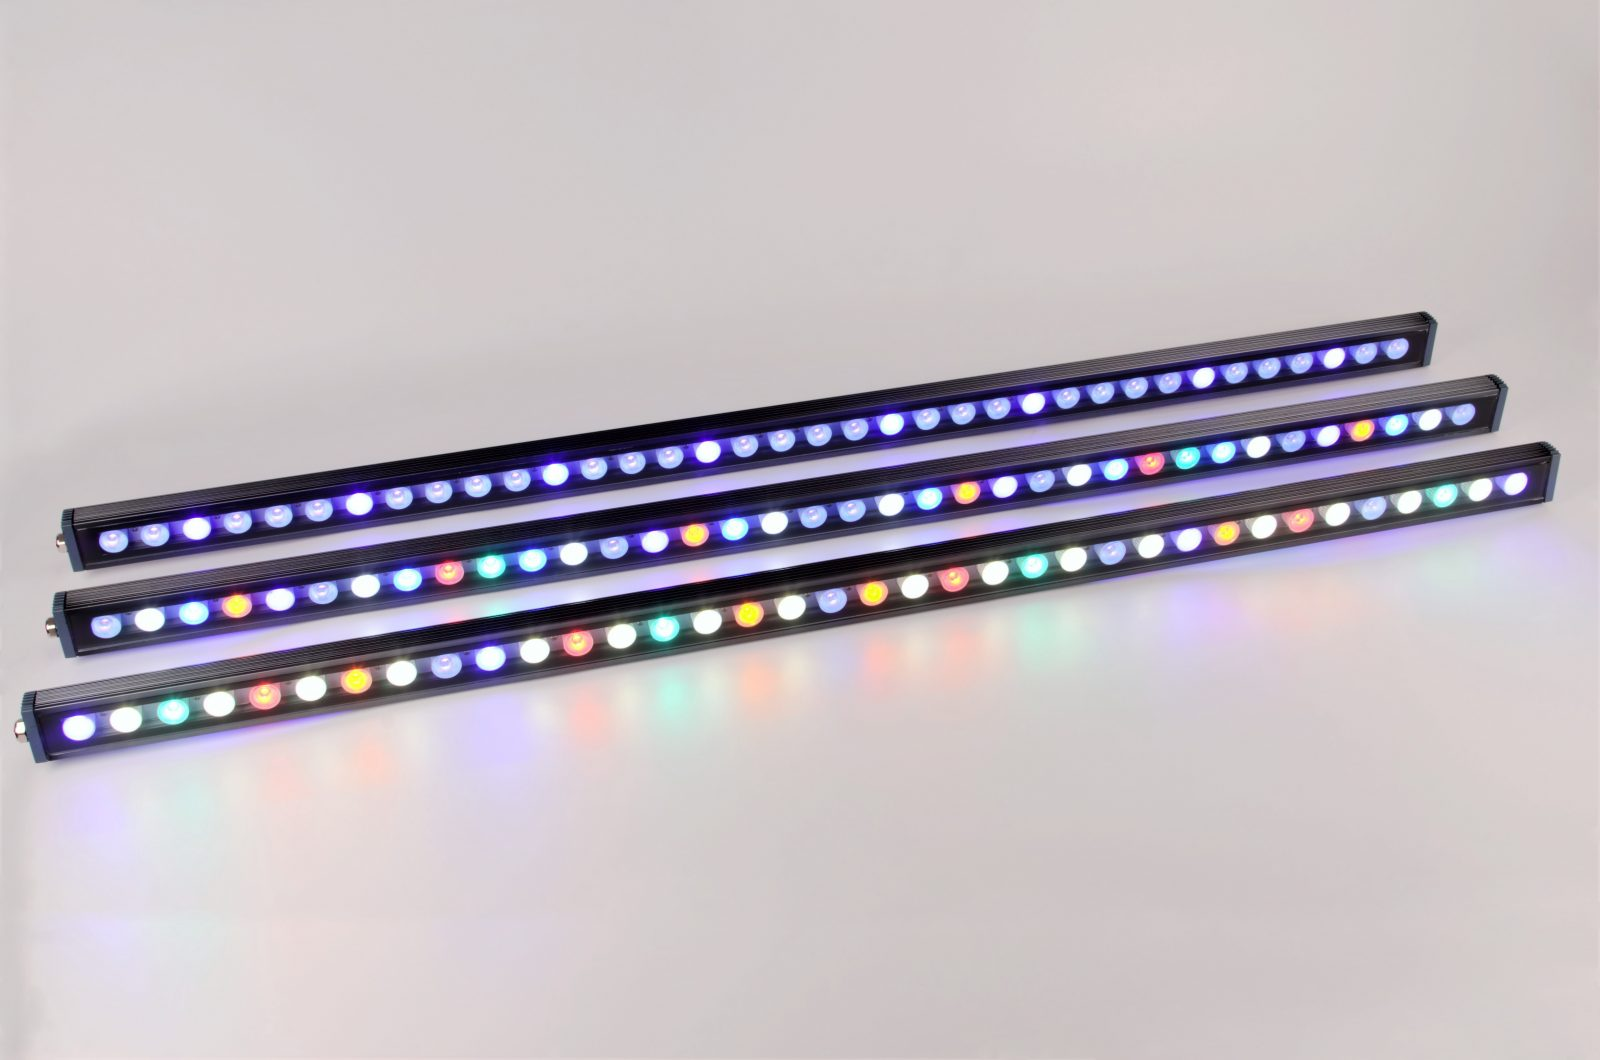 Aquarium-LED-lighting-Orphek-OR-120cmjpg-1600x1060.jpg